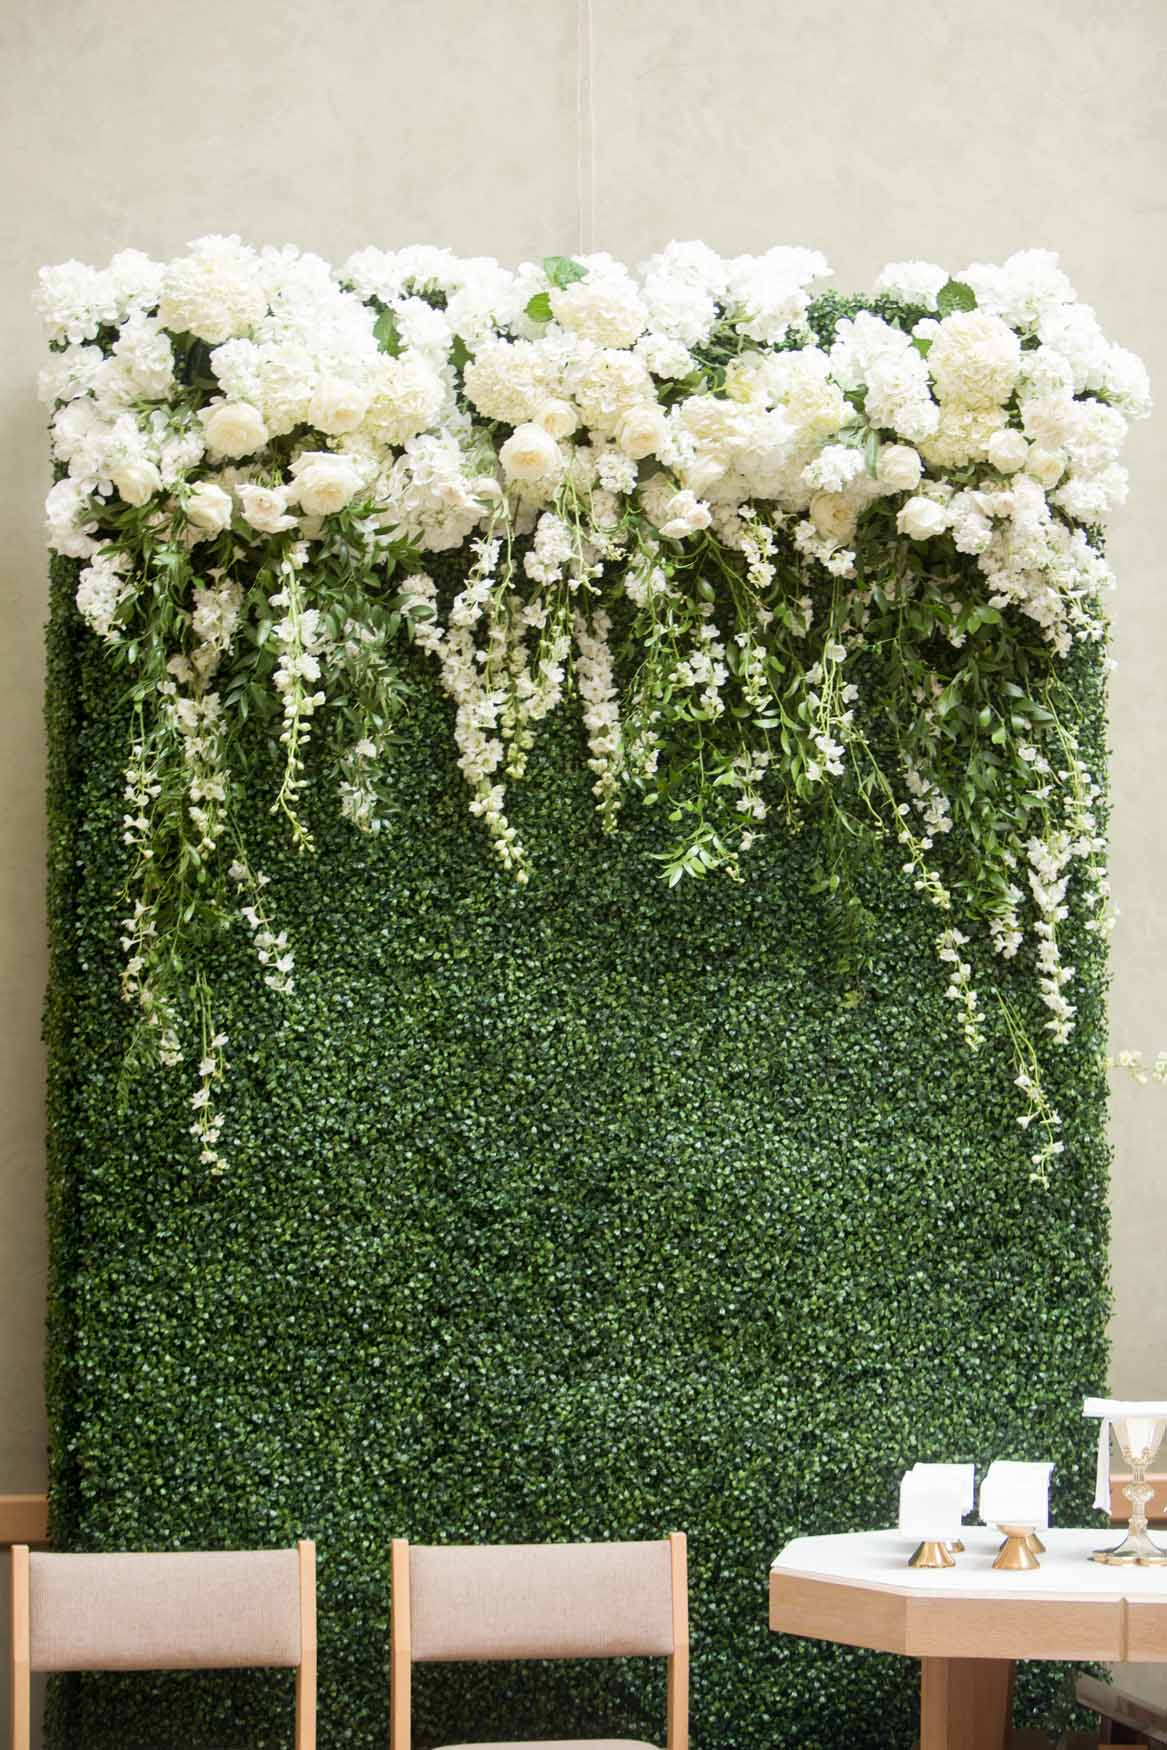 Large greenery wall trailing with white flowers - Elegant Summer Private Estate Wedding. Flora Nova Design Seattle